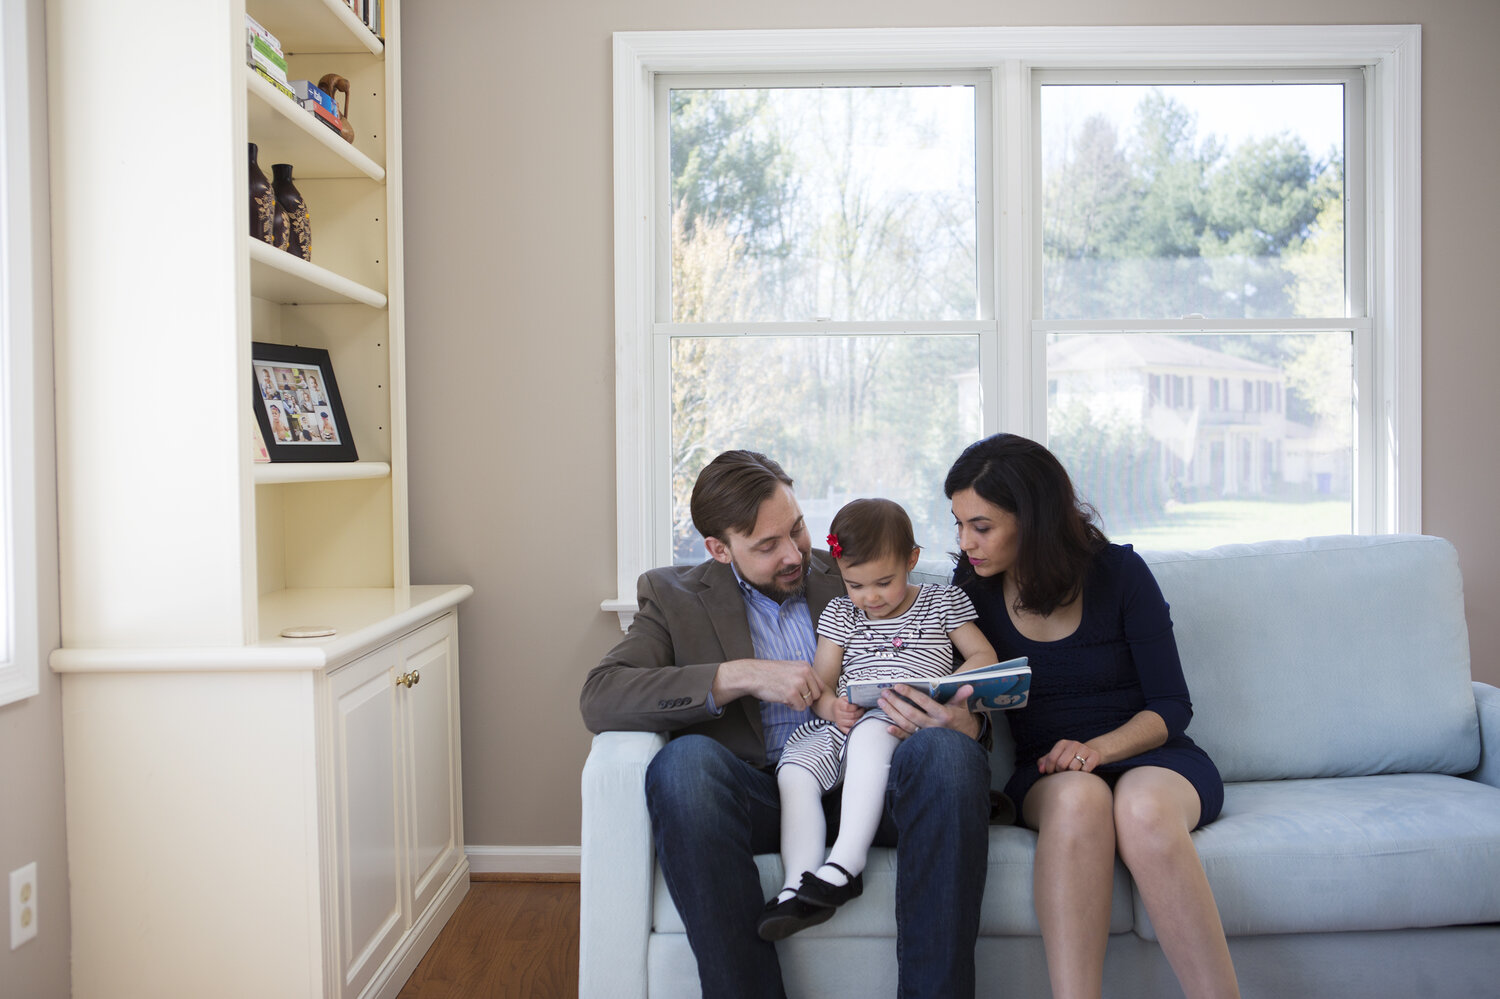 Travis and Sadiye Rieder read a book with their 2-year-old daughter, Sinem, in their Maryland home. Travis is a philosopher and ethicist who argues against having too many children, for moral and environmental reasons. His wife always wanted to have a big family.